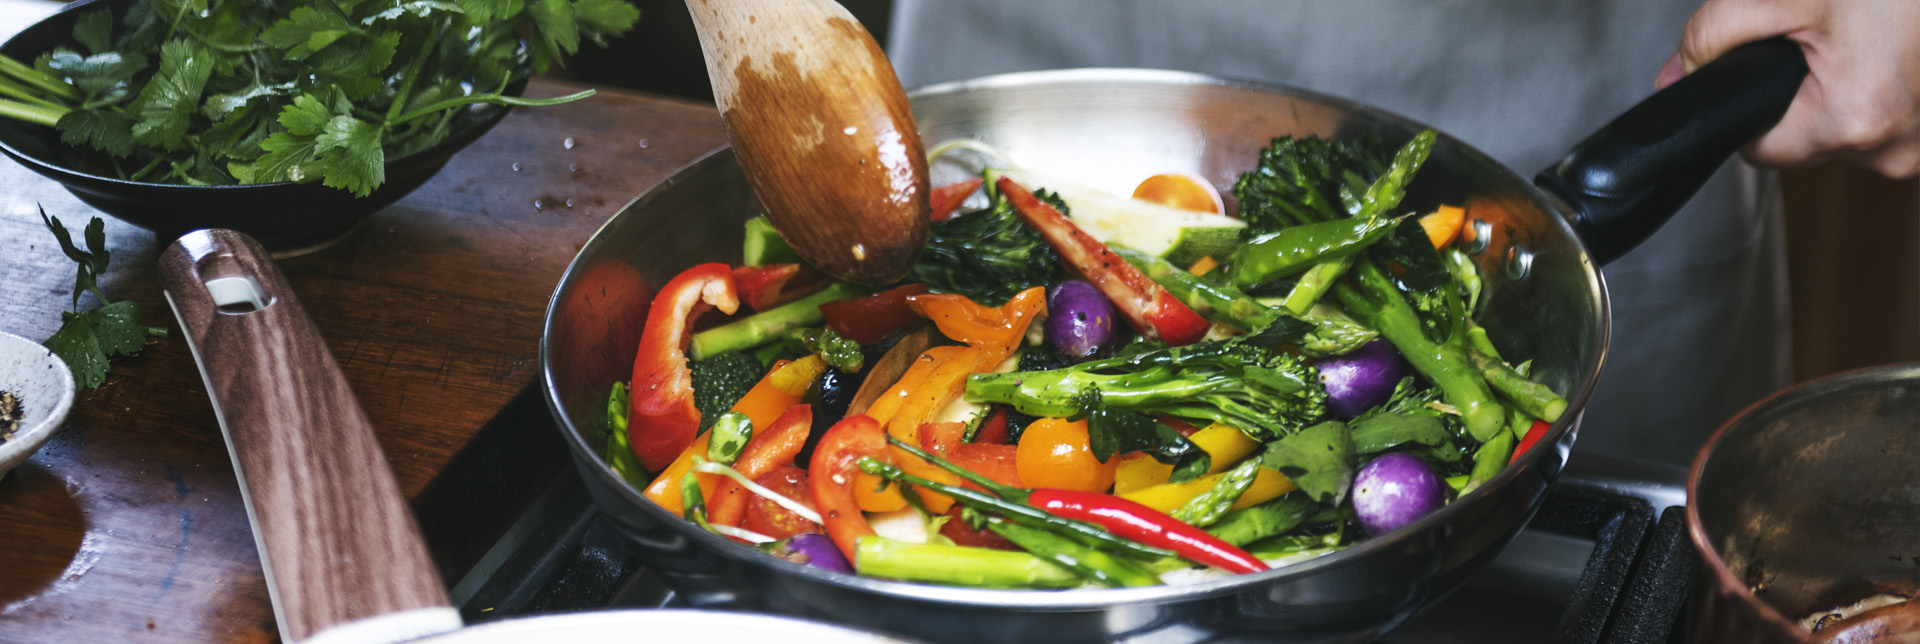 How Cooking Affects the Nutrients in Your Food